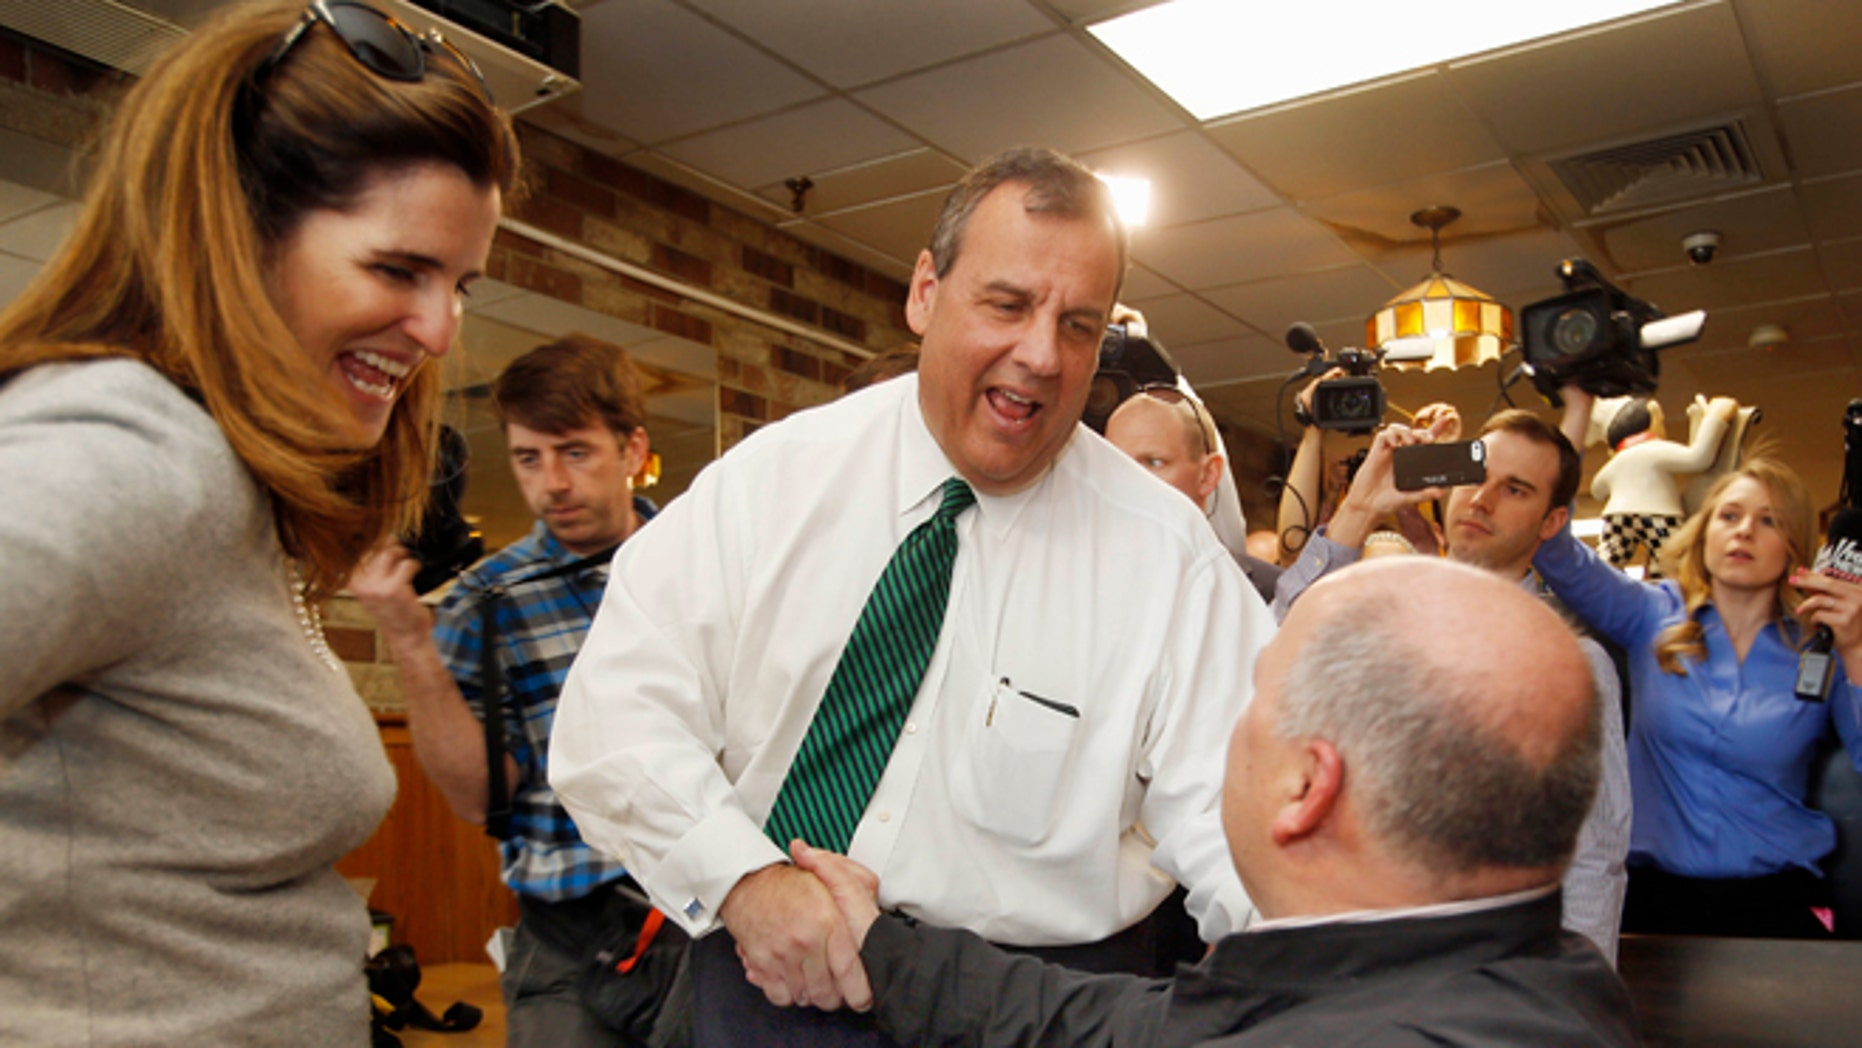 April 14, 2015: New Jersey Gov. Chris Christie, R-N.J. , accompanied by his wife Mary Pat, shakes hands with Don VanDenBerghe during a stop in New Hampshire.